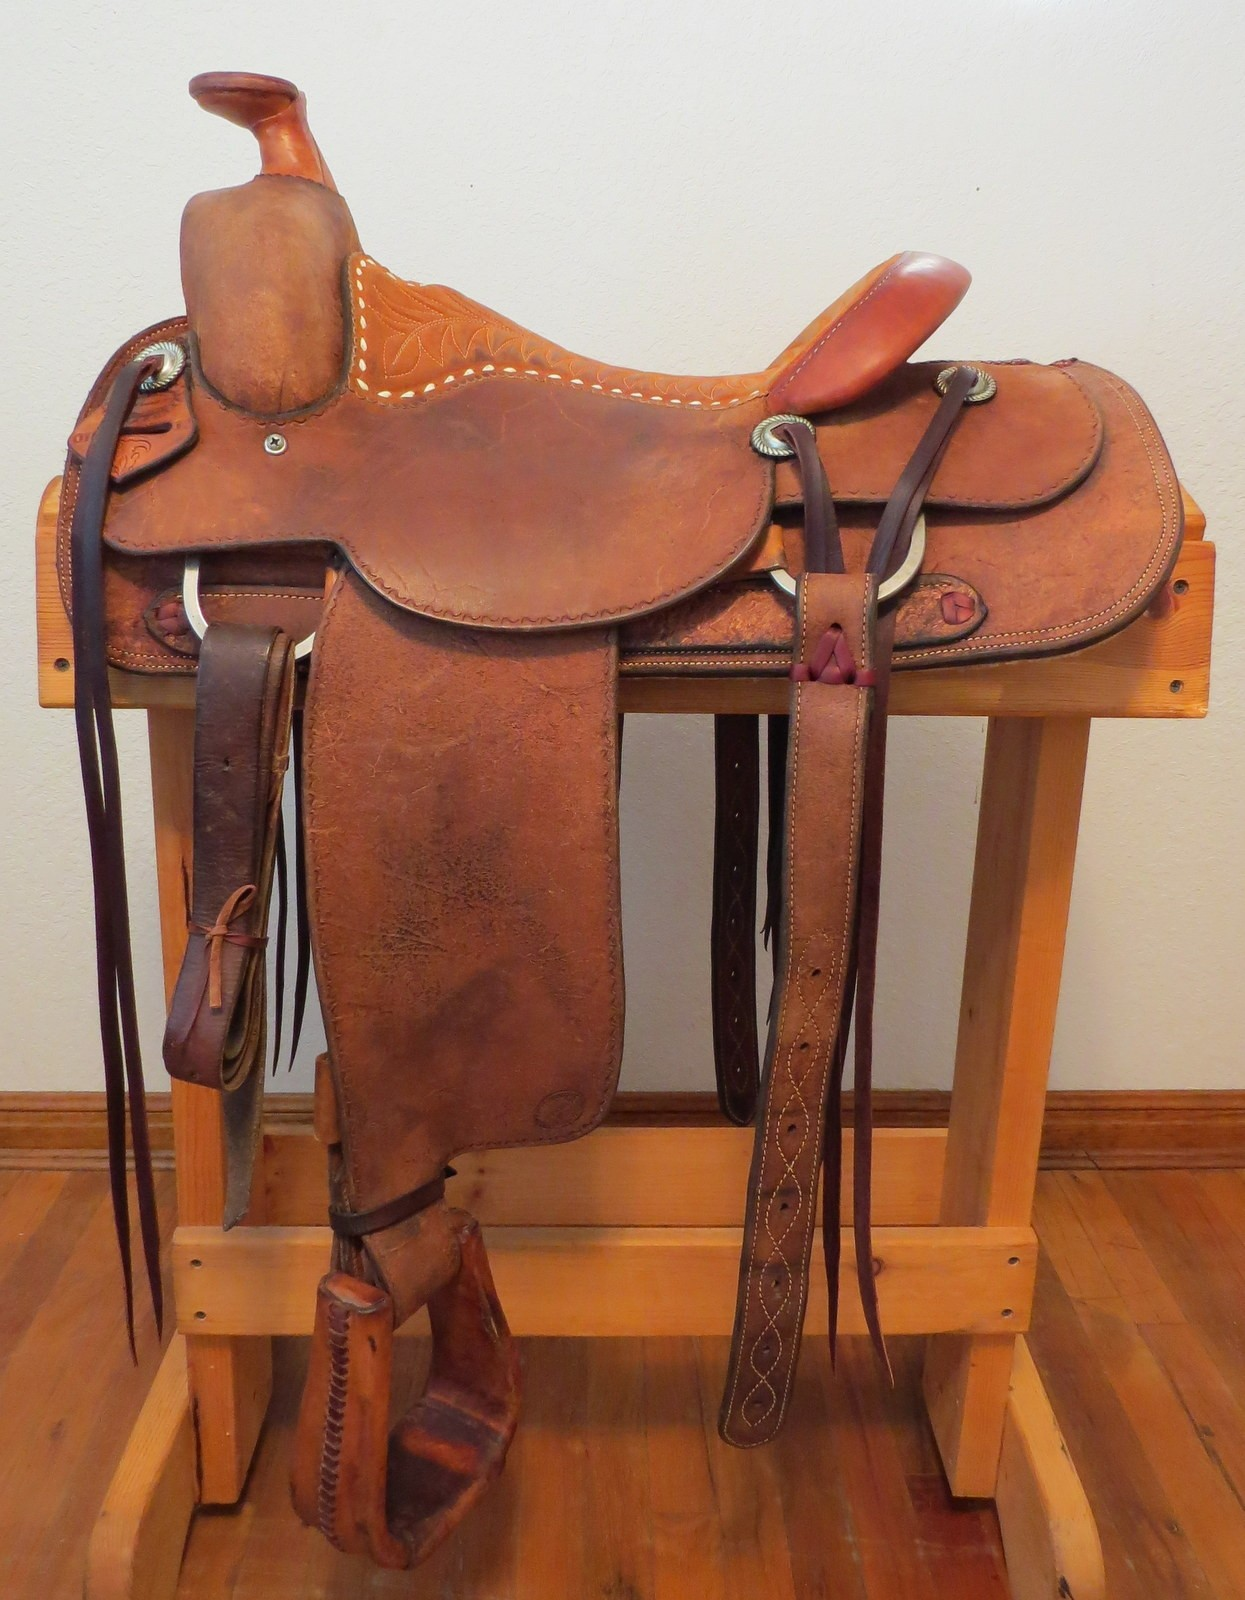 horse saddle office chair reupholster seat 9088 handmade larry duggan cowboy shop rough out 15 ¼